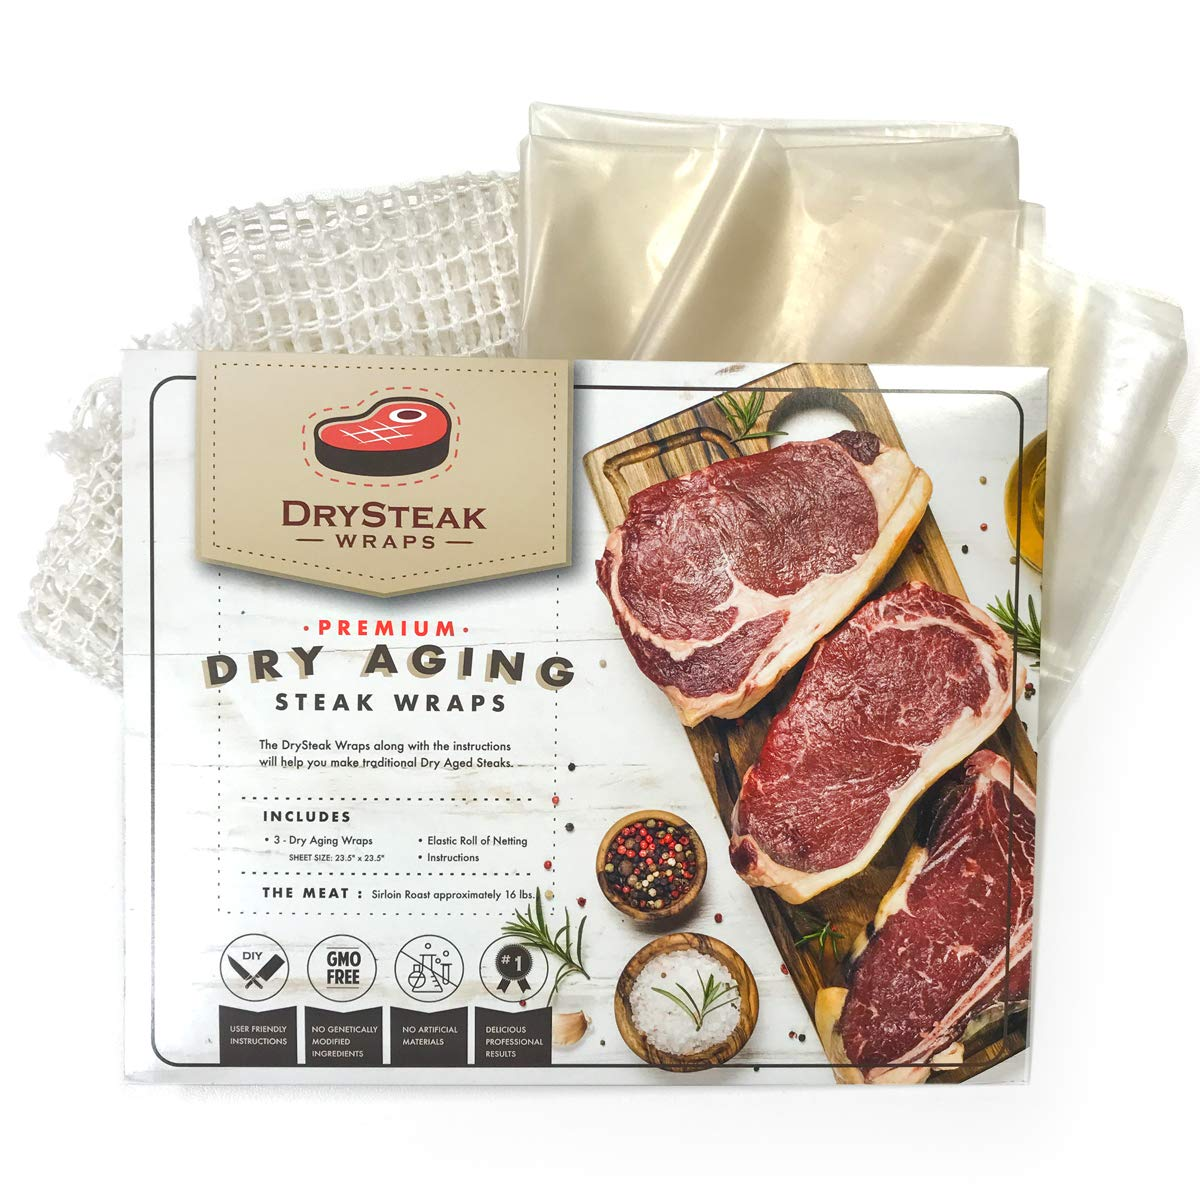 The Sausage Maker - DrySteak Wraps for Dry Aging Meat at Home, Dry Age Sirloin, Ribeye and Short Loin